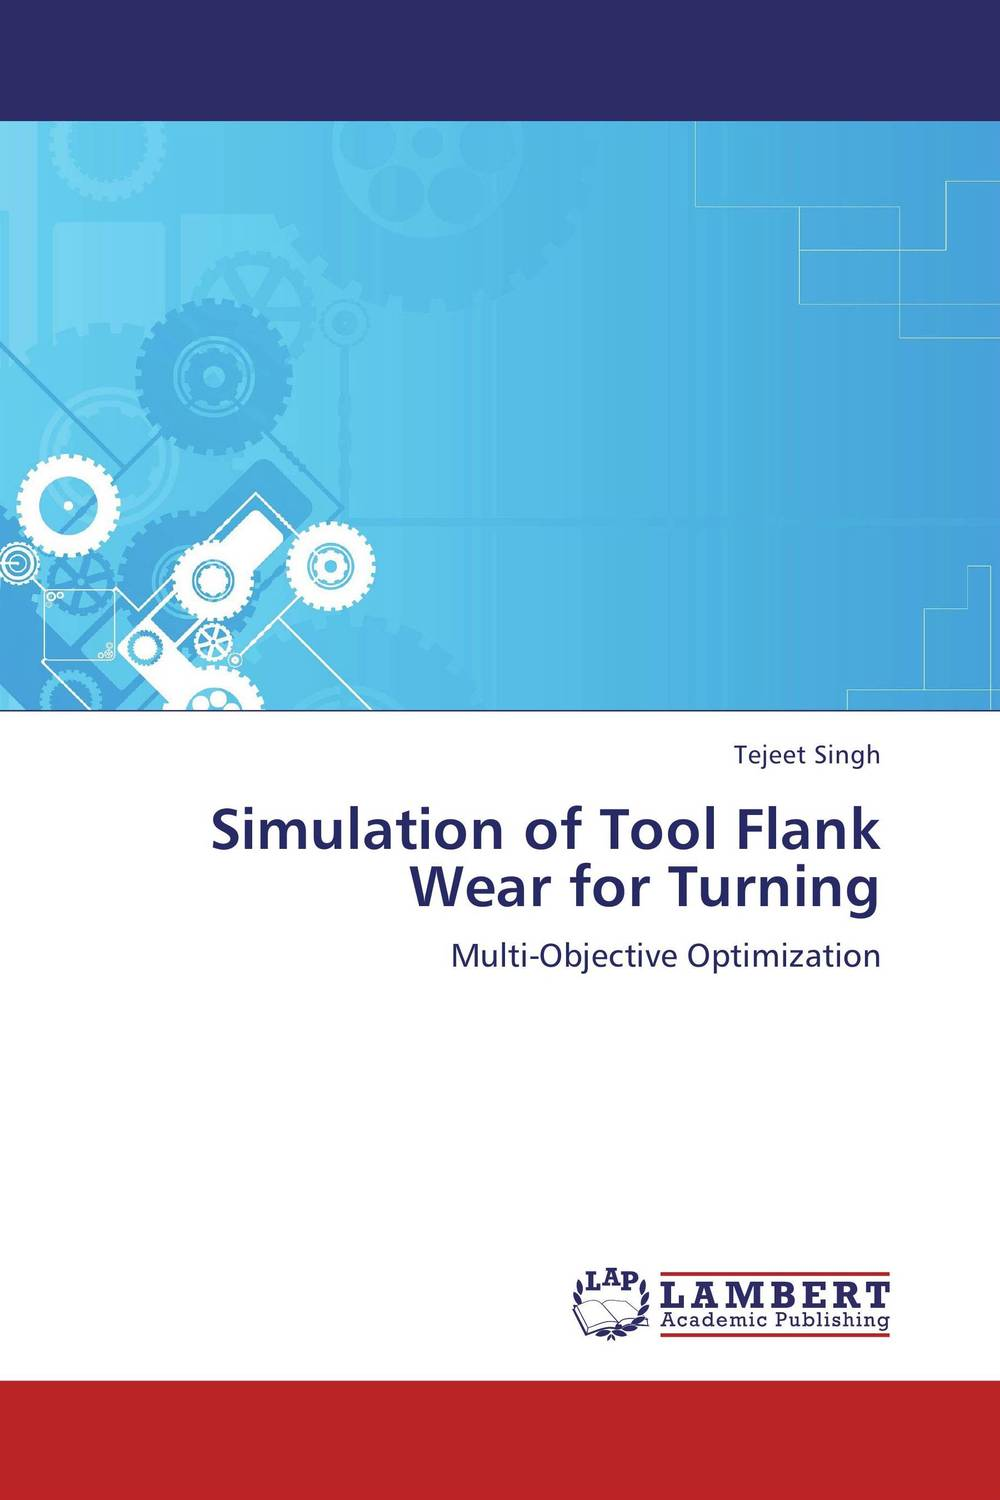 Simulation of Tool Flank Wear for Turning